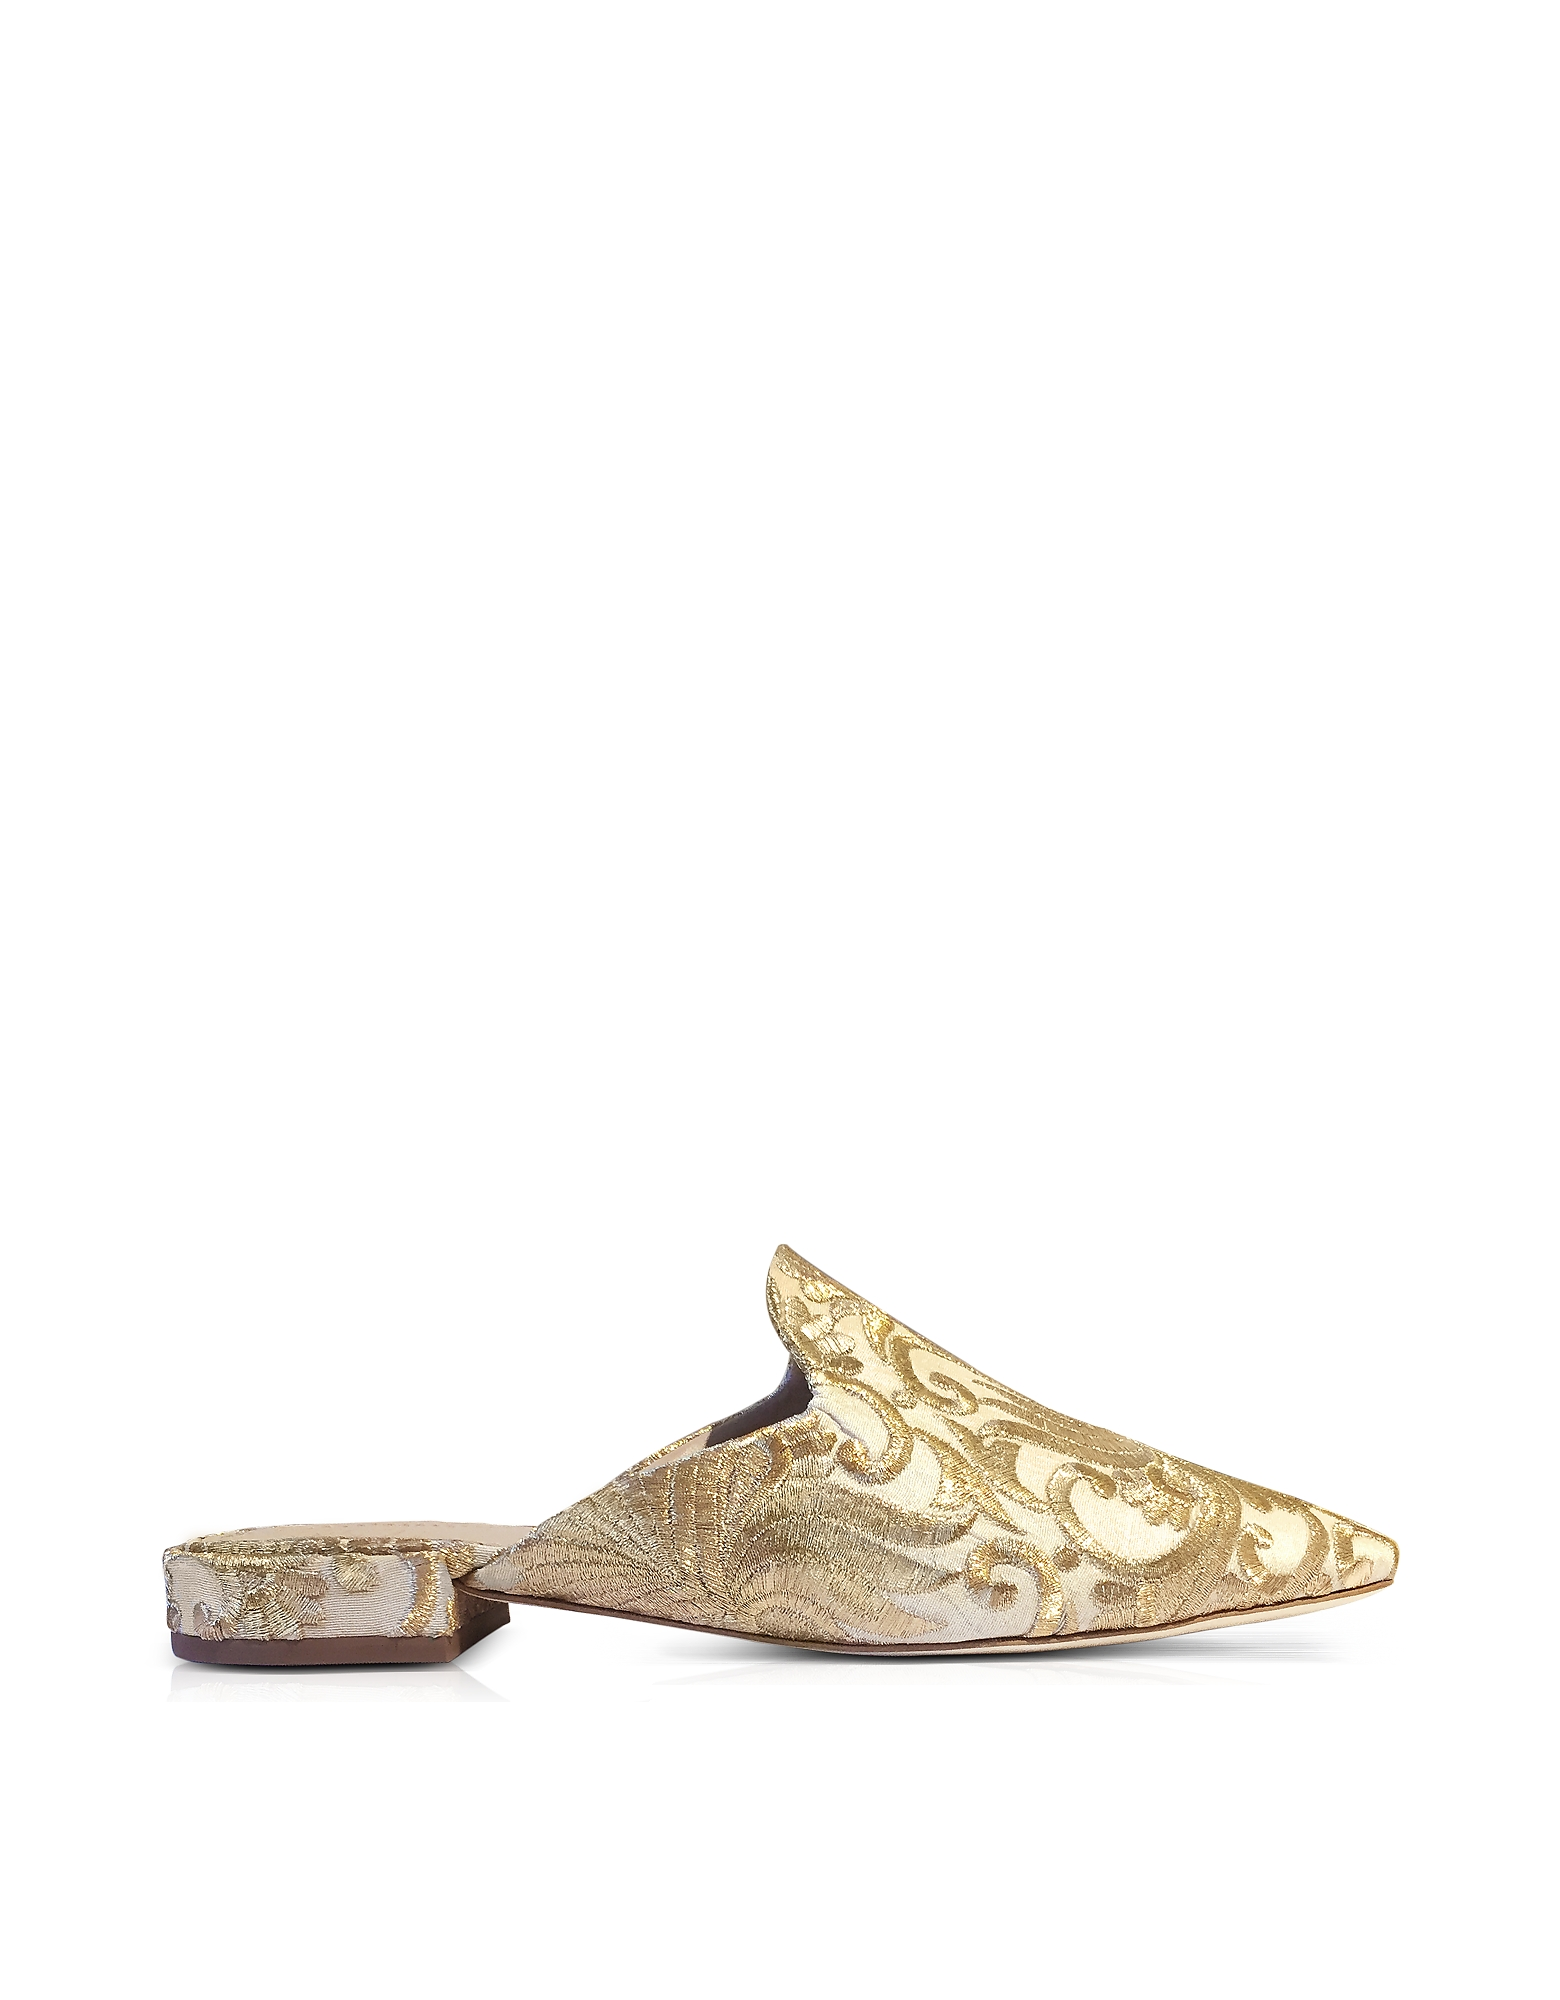 Tory Burch Shoes, Carlotta Beige and Gold Embroidered Brocade Mules